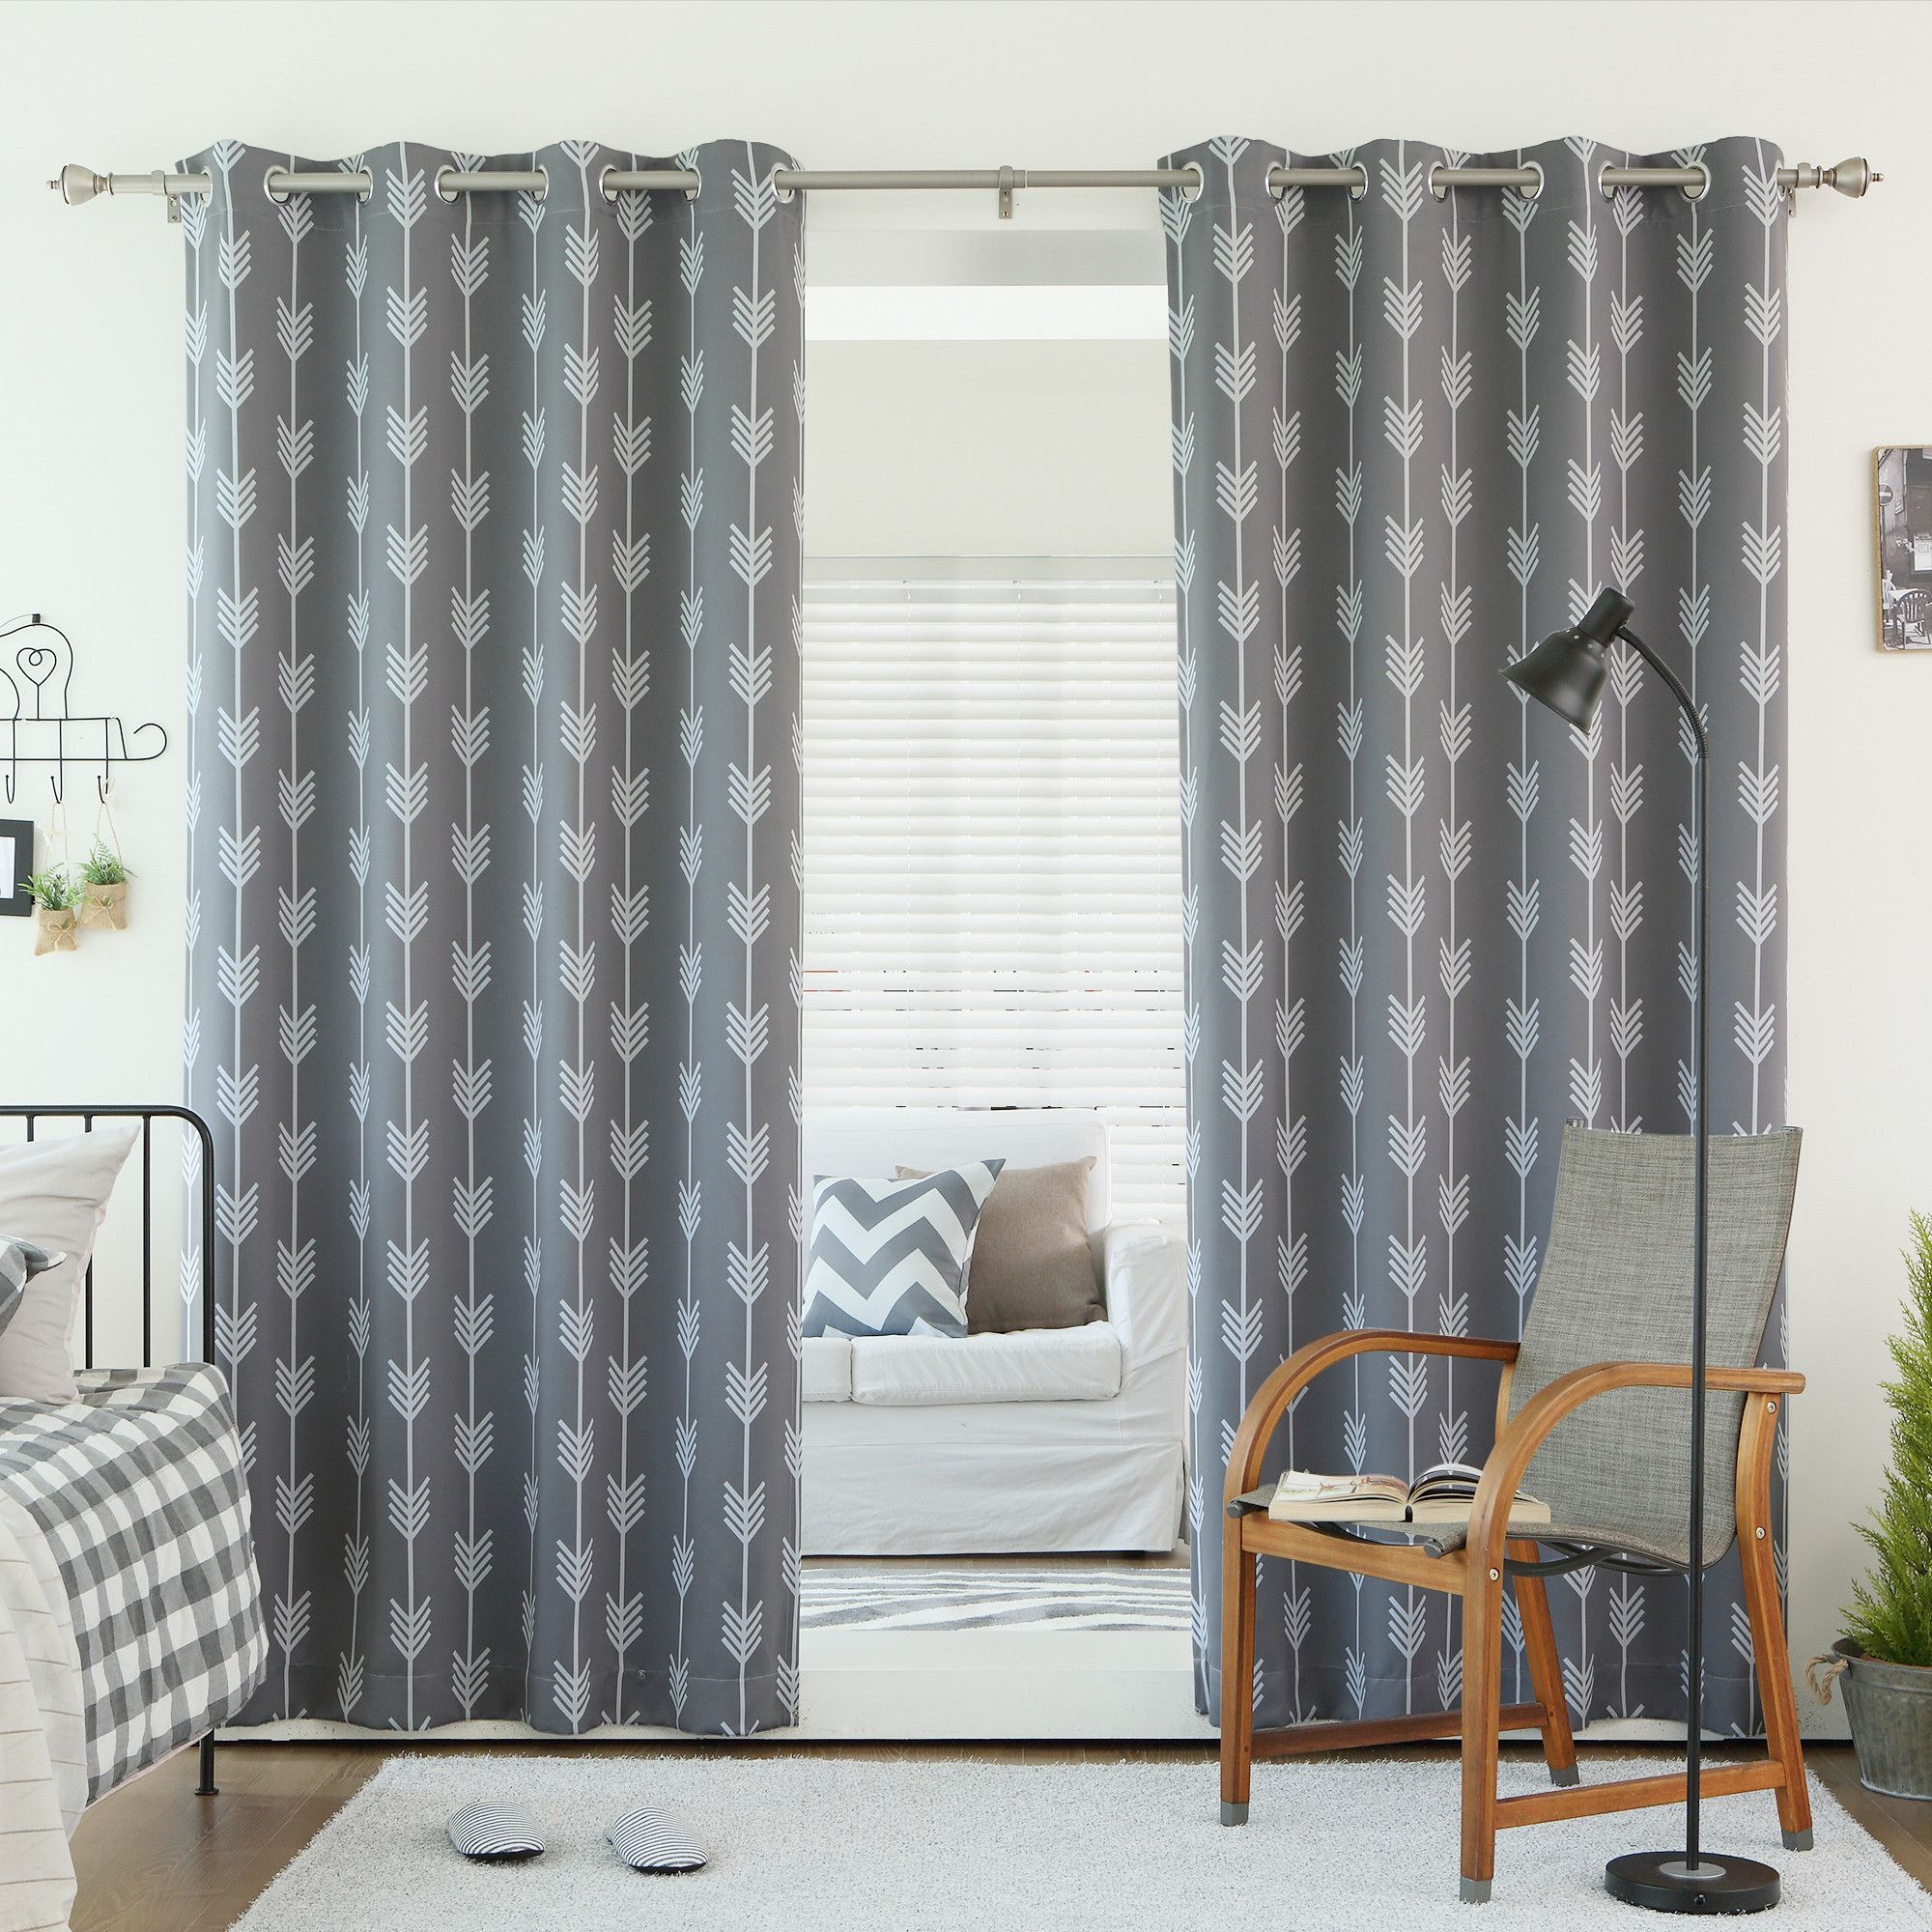 fancy plush design moorish tile curtain. Best Home Fashion Grey Arrow Room Darkening Blackout Grommet Top Curtain  1 Pair Curtains your kids will love Choose from our many different fun designs Panels Wayfair decorating